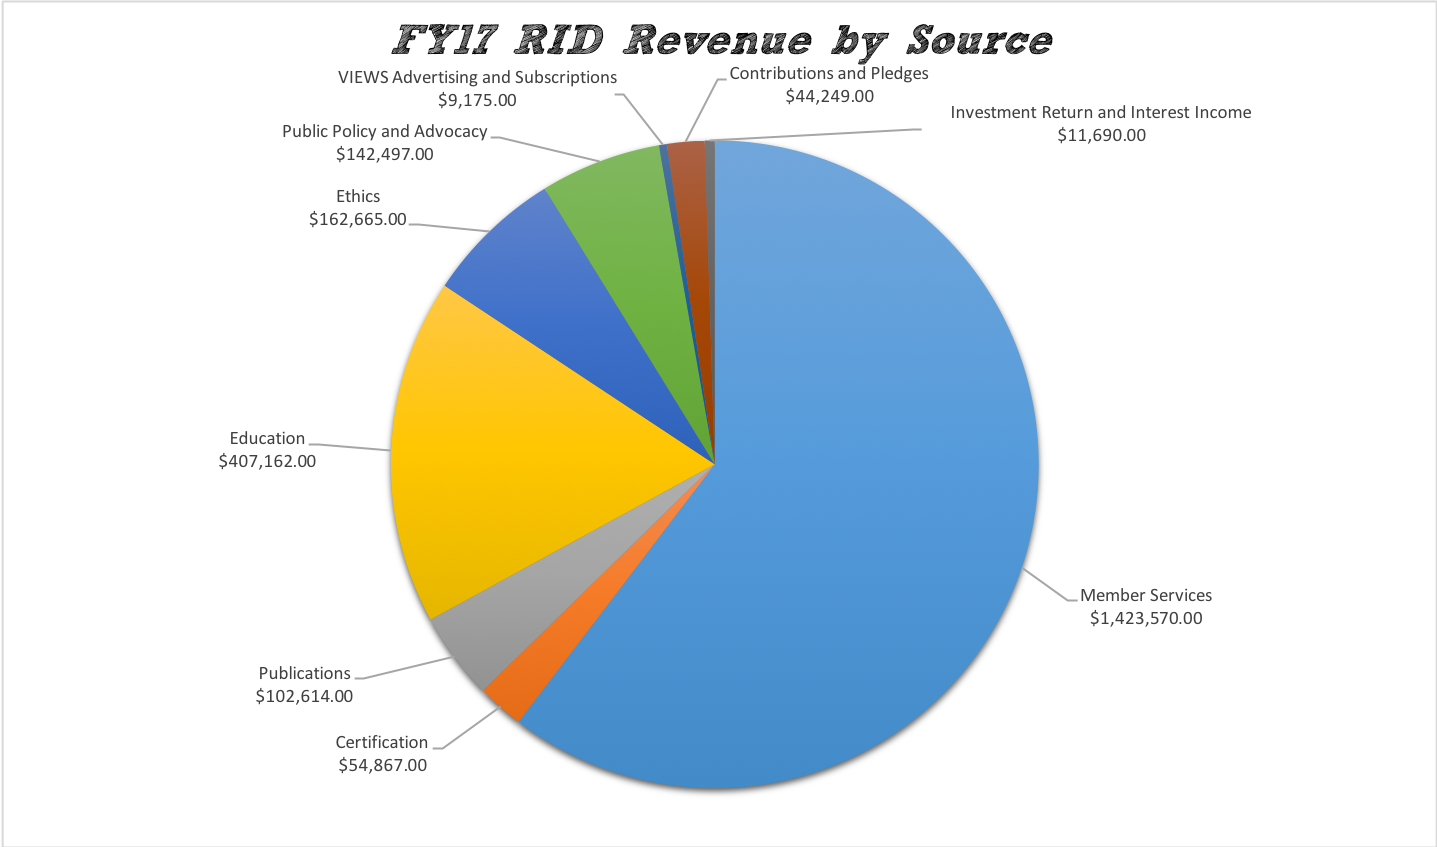 FY17 RID Revenue by Source